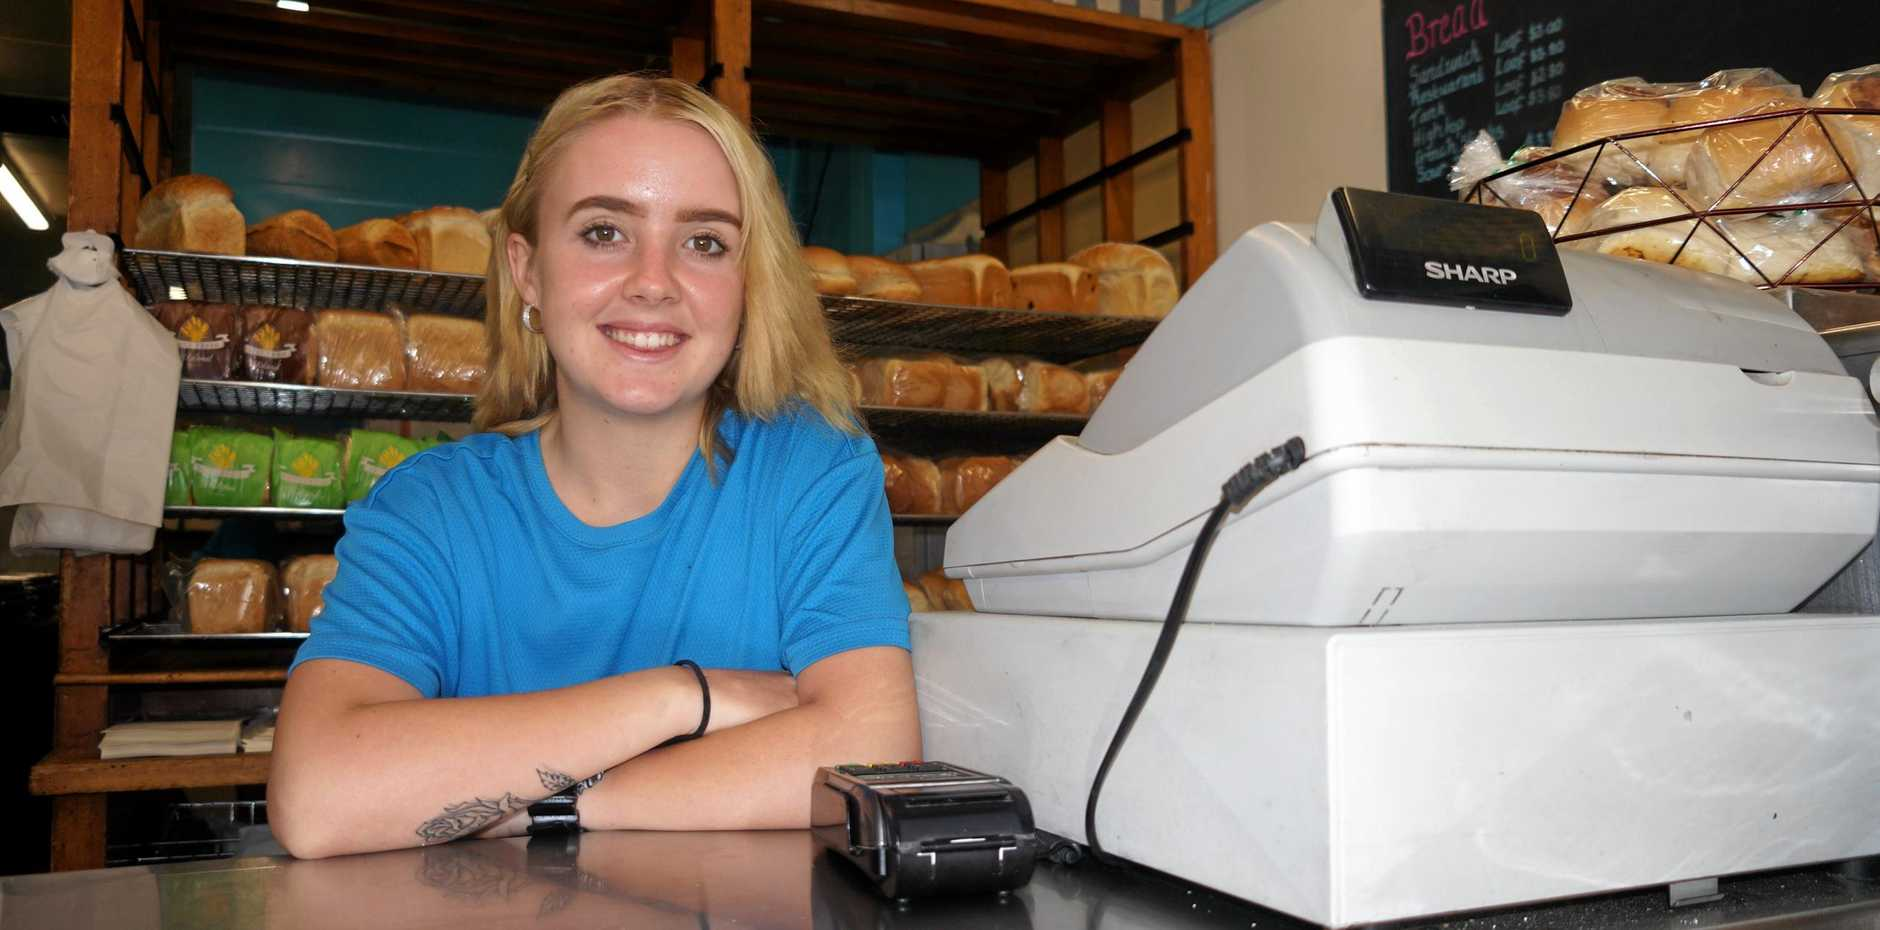 JOB SUCCESS: Jessica Hailey found employment at the Kent St Bakery after almost a year of job hunting across the Fraser Coast. The State Government's Back to Work program assisted with her job find.